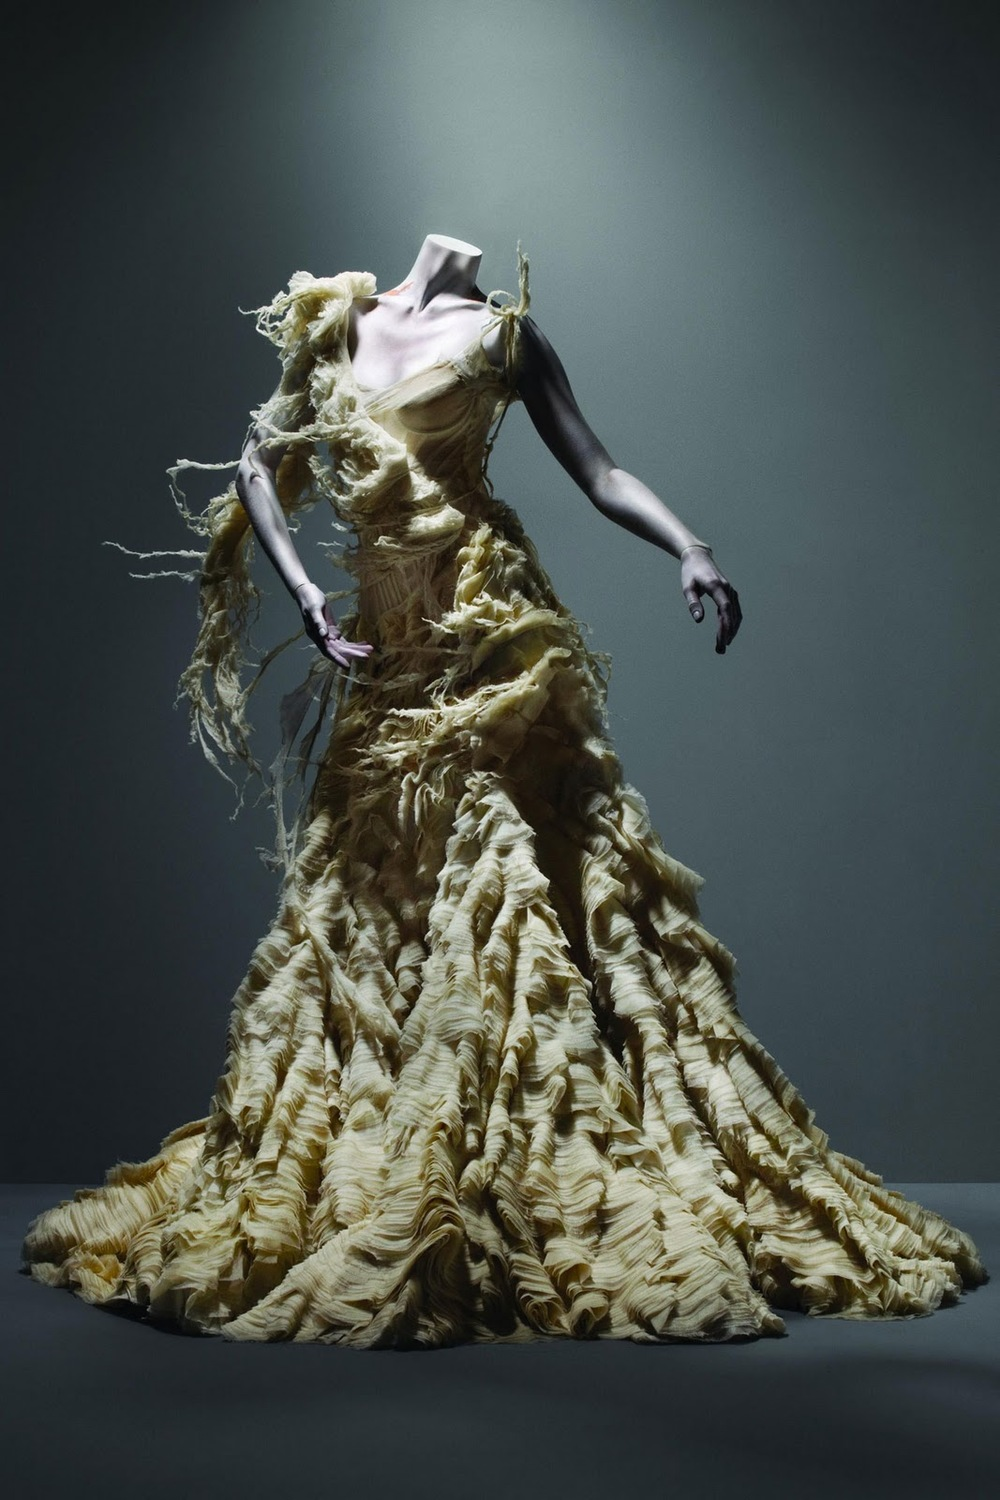 Alexander McQueen. Savage Beauty